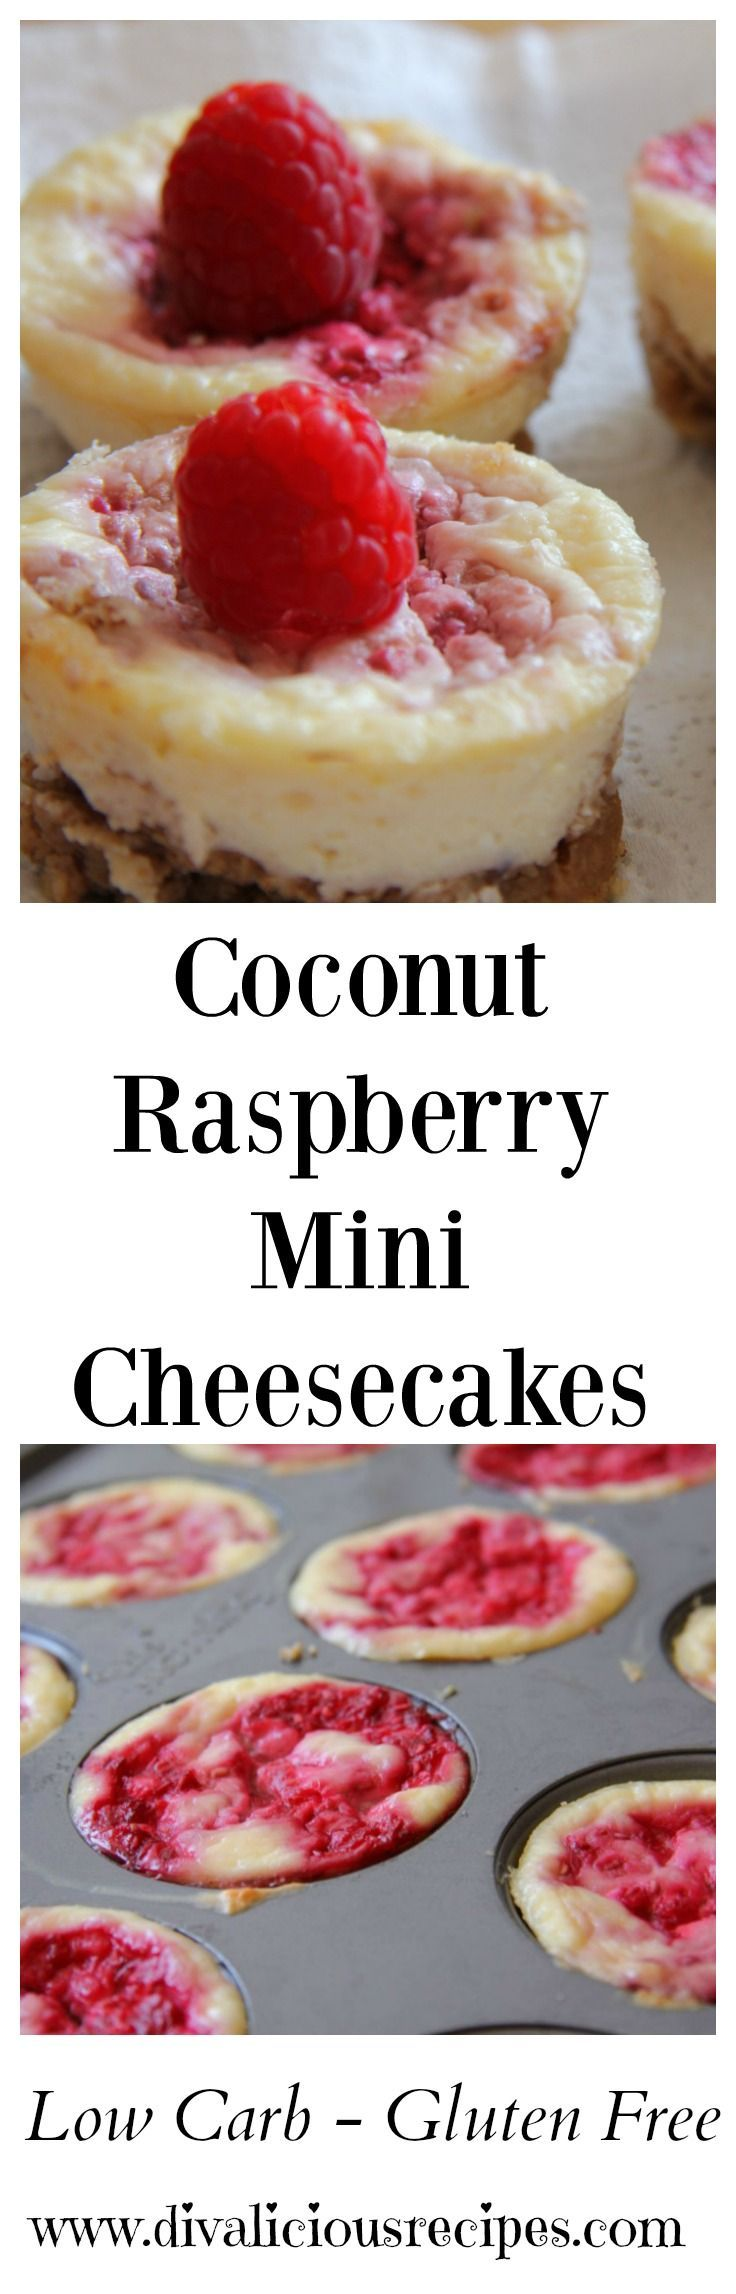 A coconut raspberry cheesecake that is low carb and gluten free. I love the flavour combination of coconut and raspberry so I put it in cheesecake form.